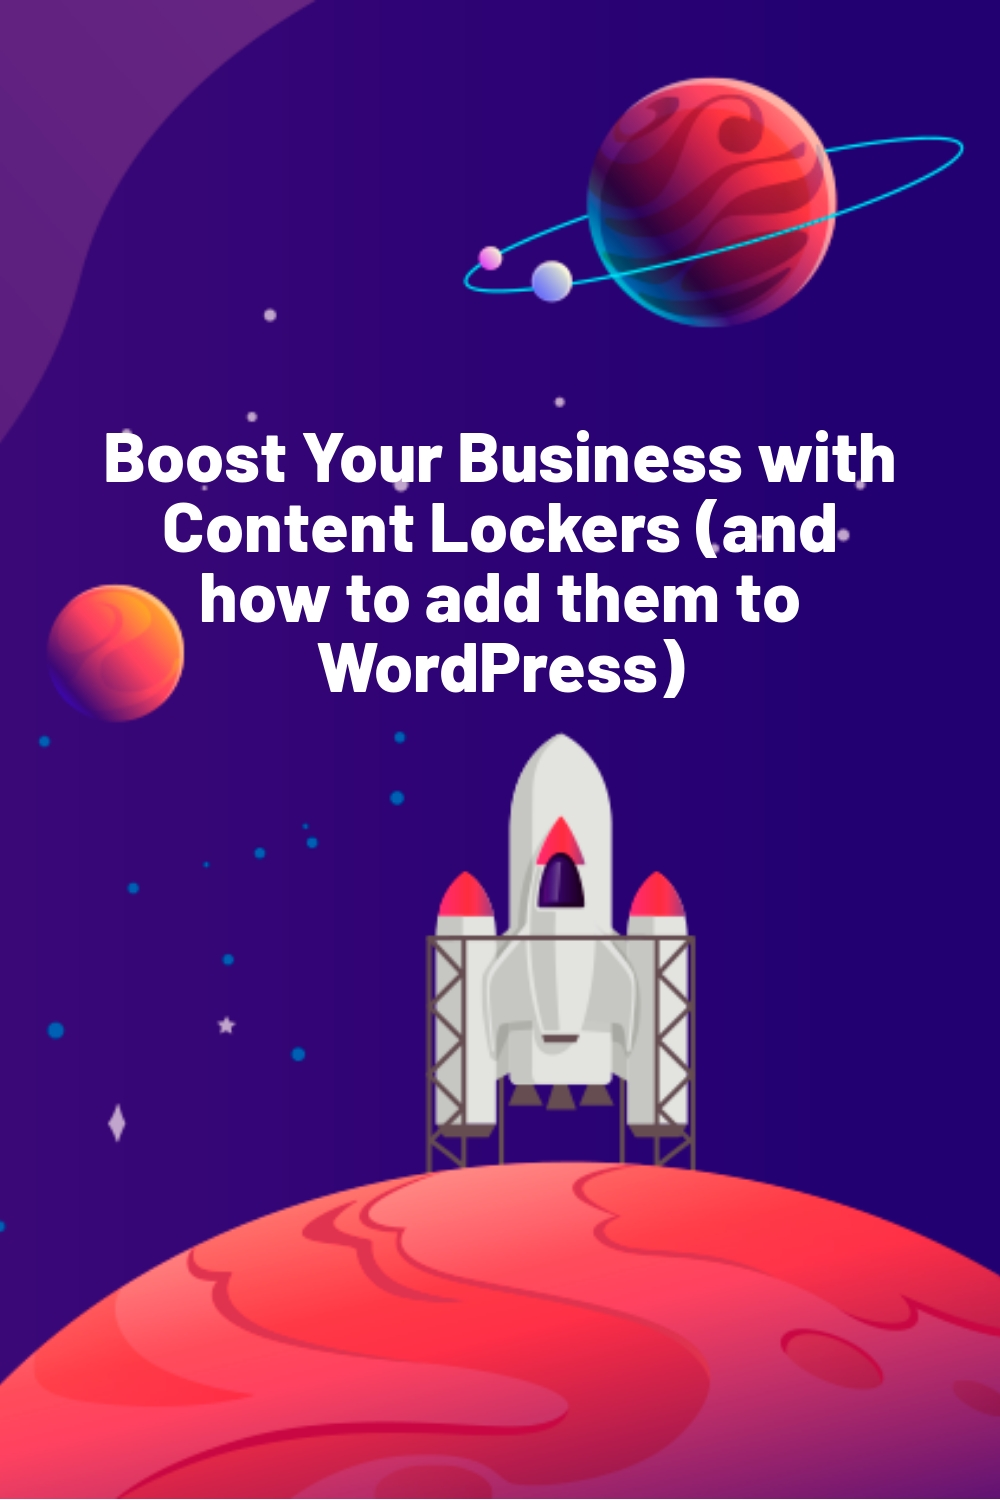 Boost Your Business with Content Lockers (and how to add them to WordPress)